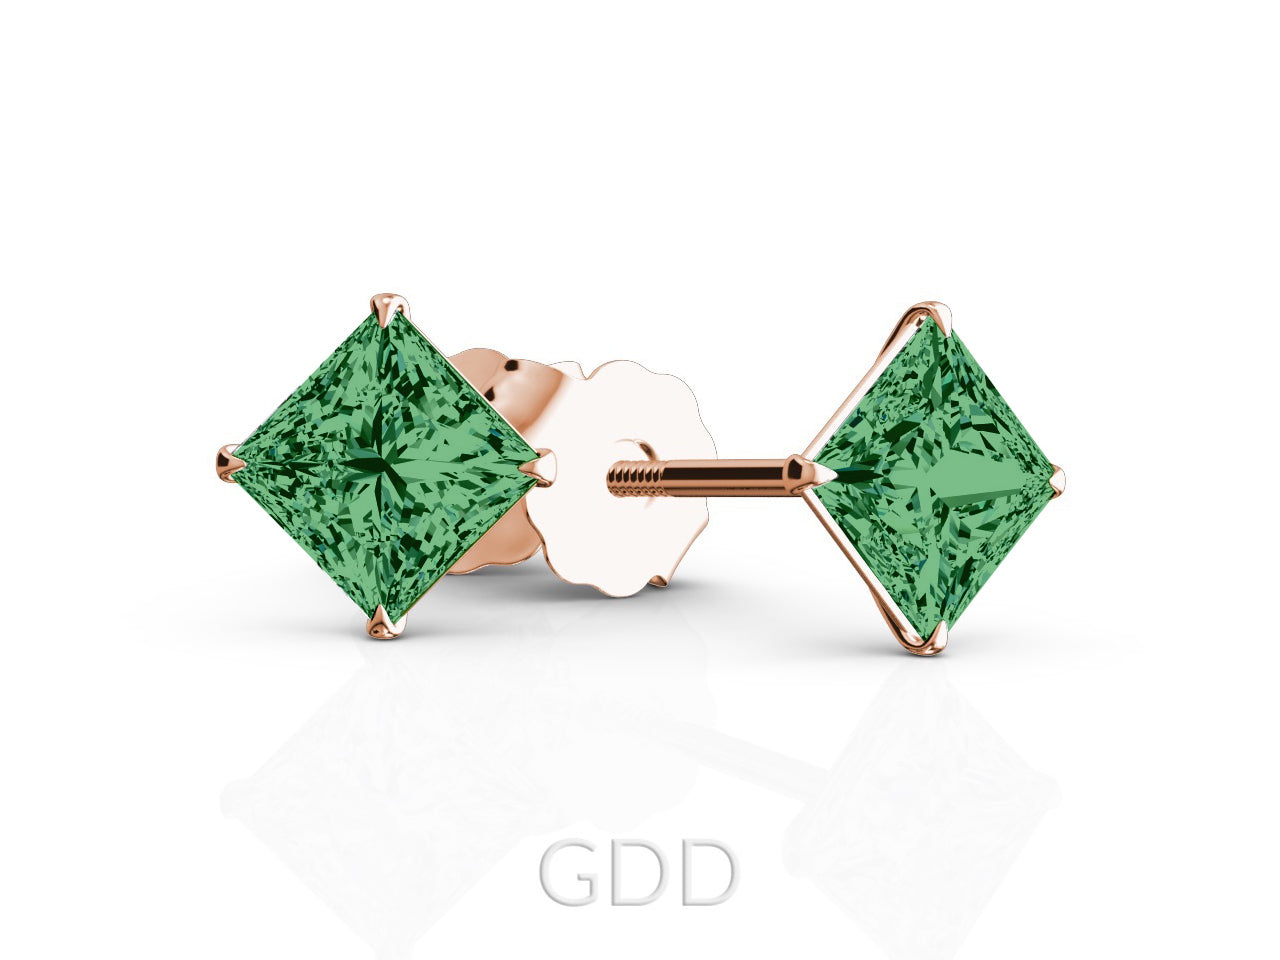 stud jewelry by earrings egs stone us geo la fine designer emerald diamond green jewellery london